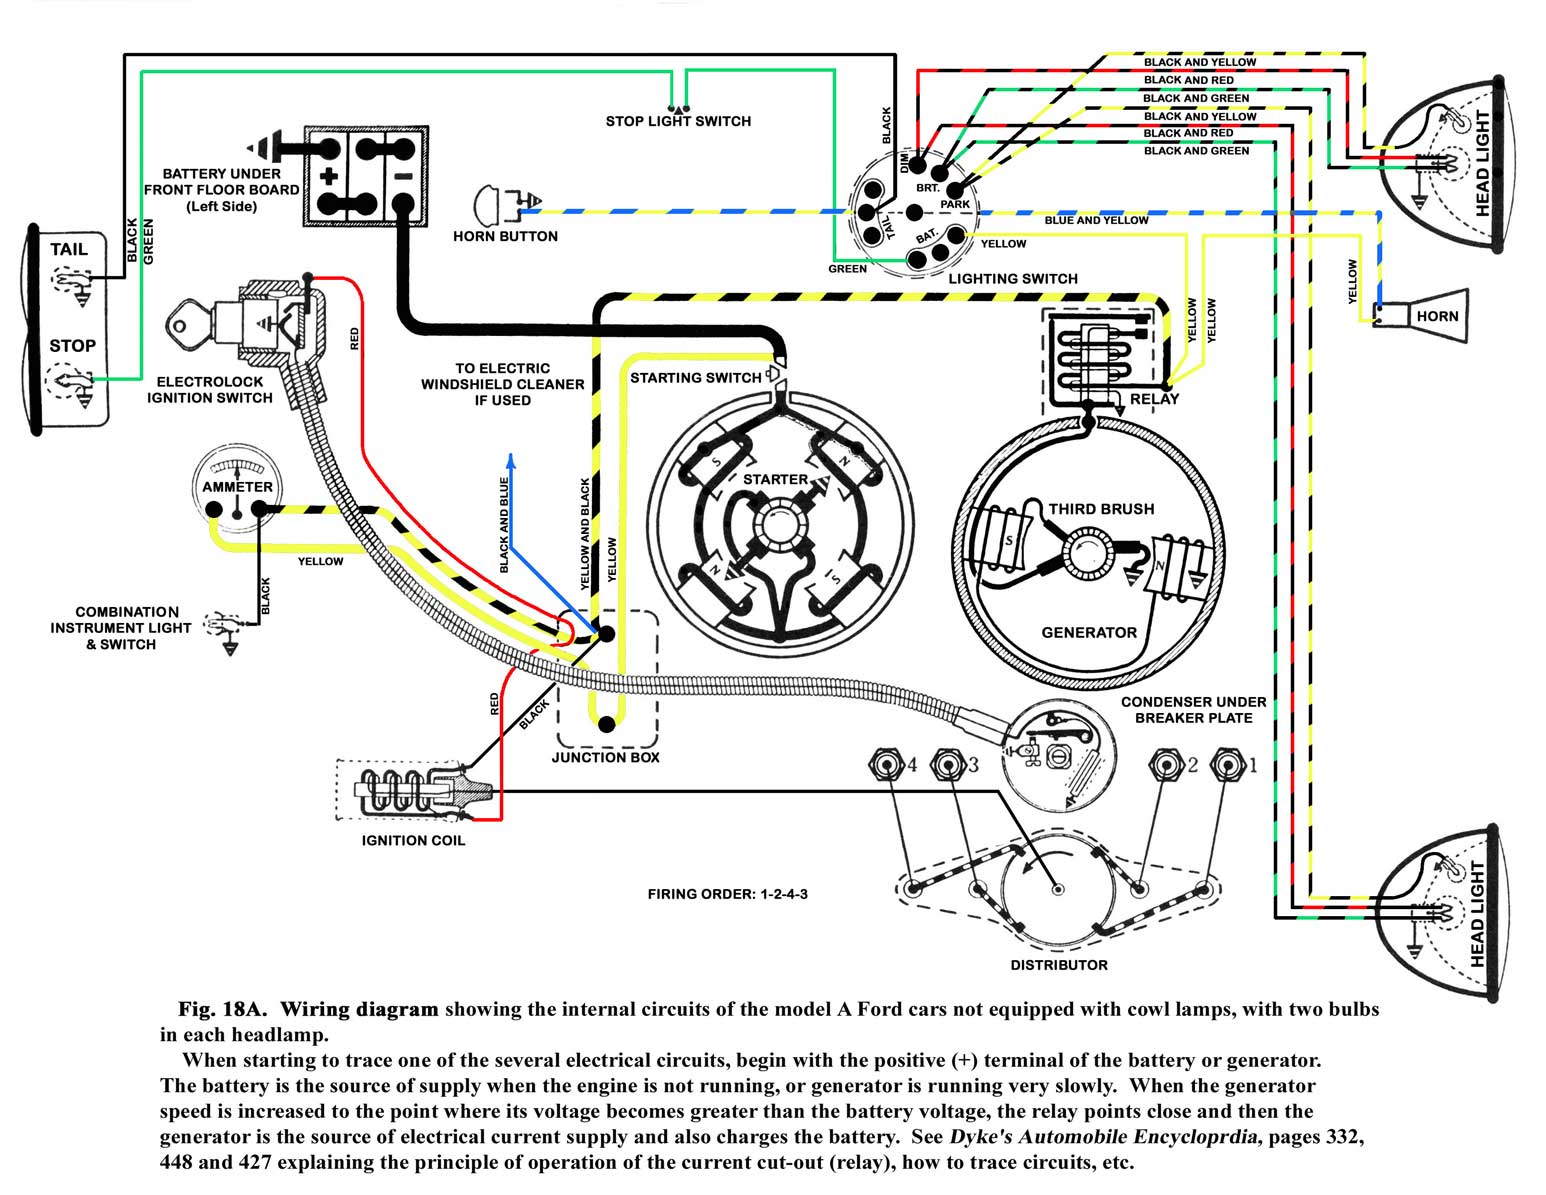 Model A Ignition Diagram Getting Ready With Wiring Ford 6v Capitol S Rh Sacramentocapitolas Org 1930 Coil